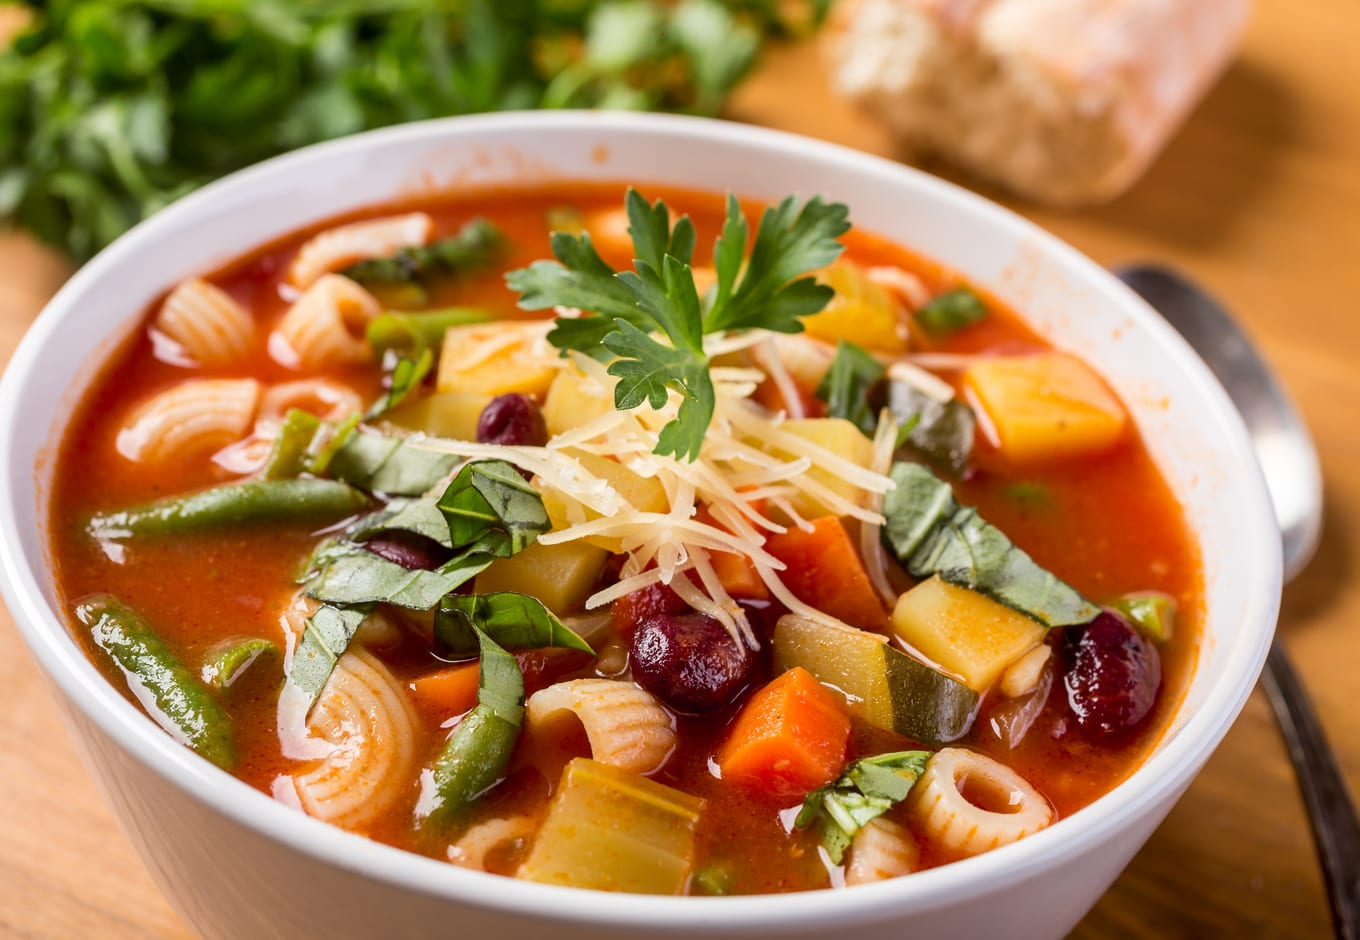 A bowl of Minestrone soup made with vegetables and pasta.